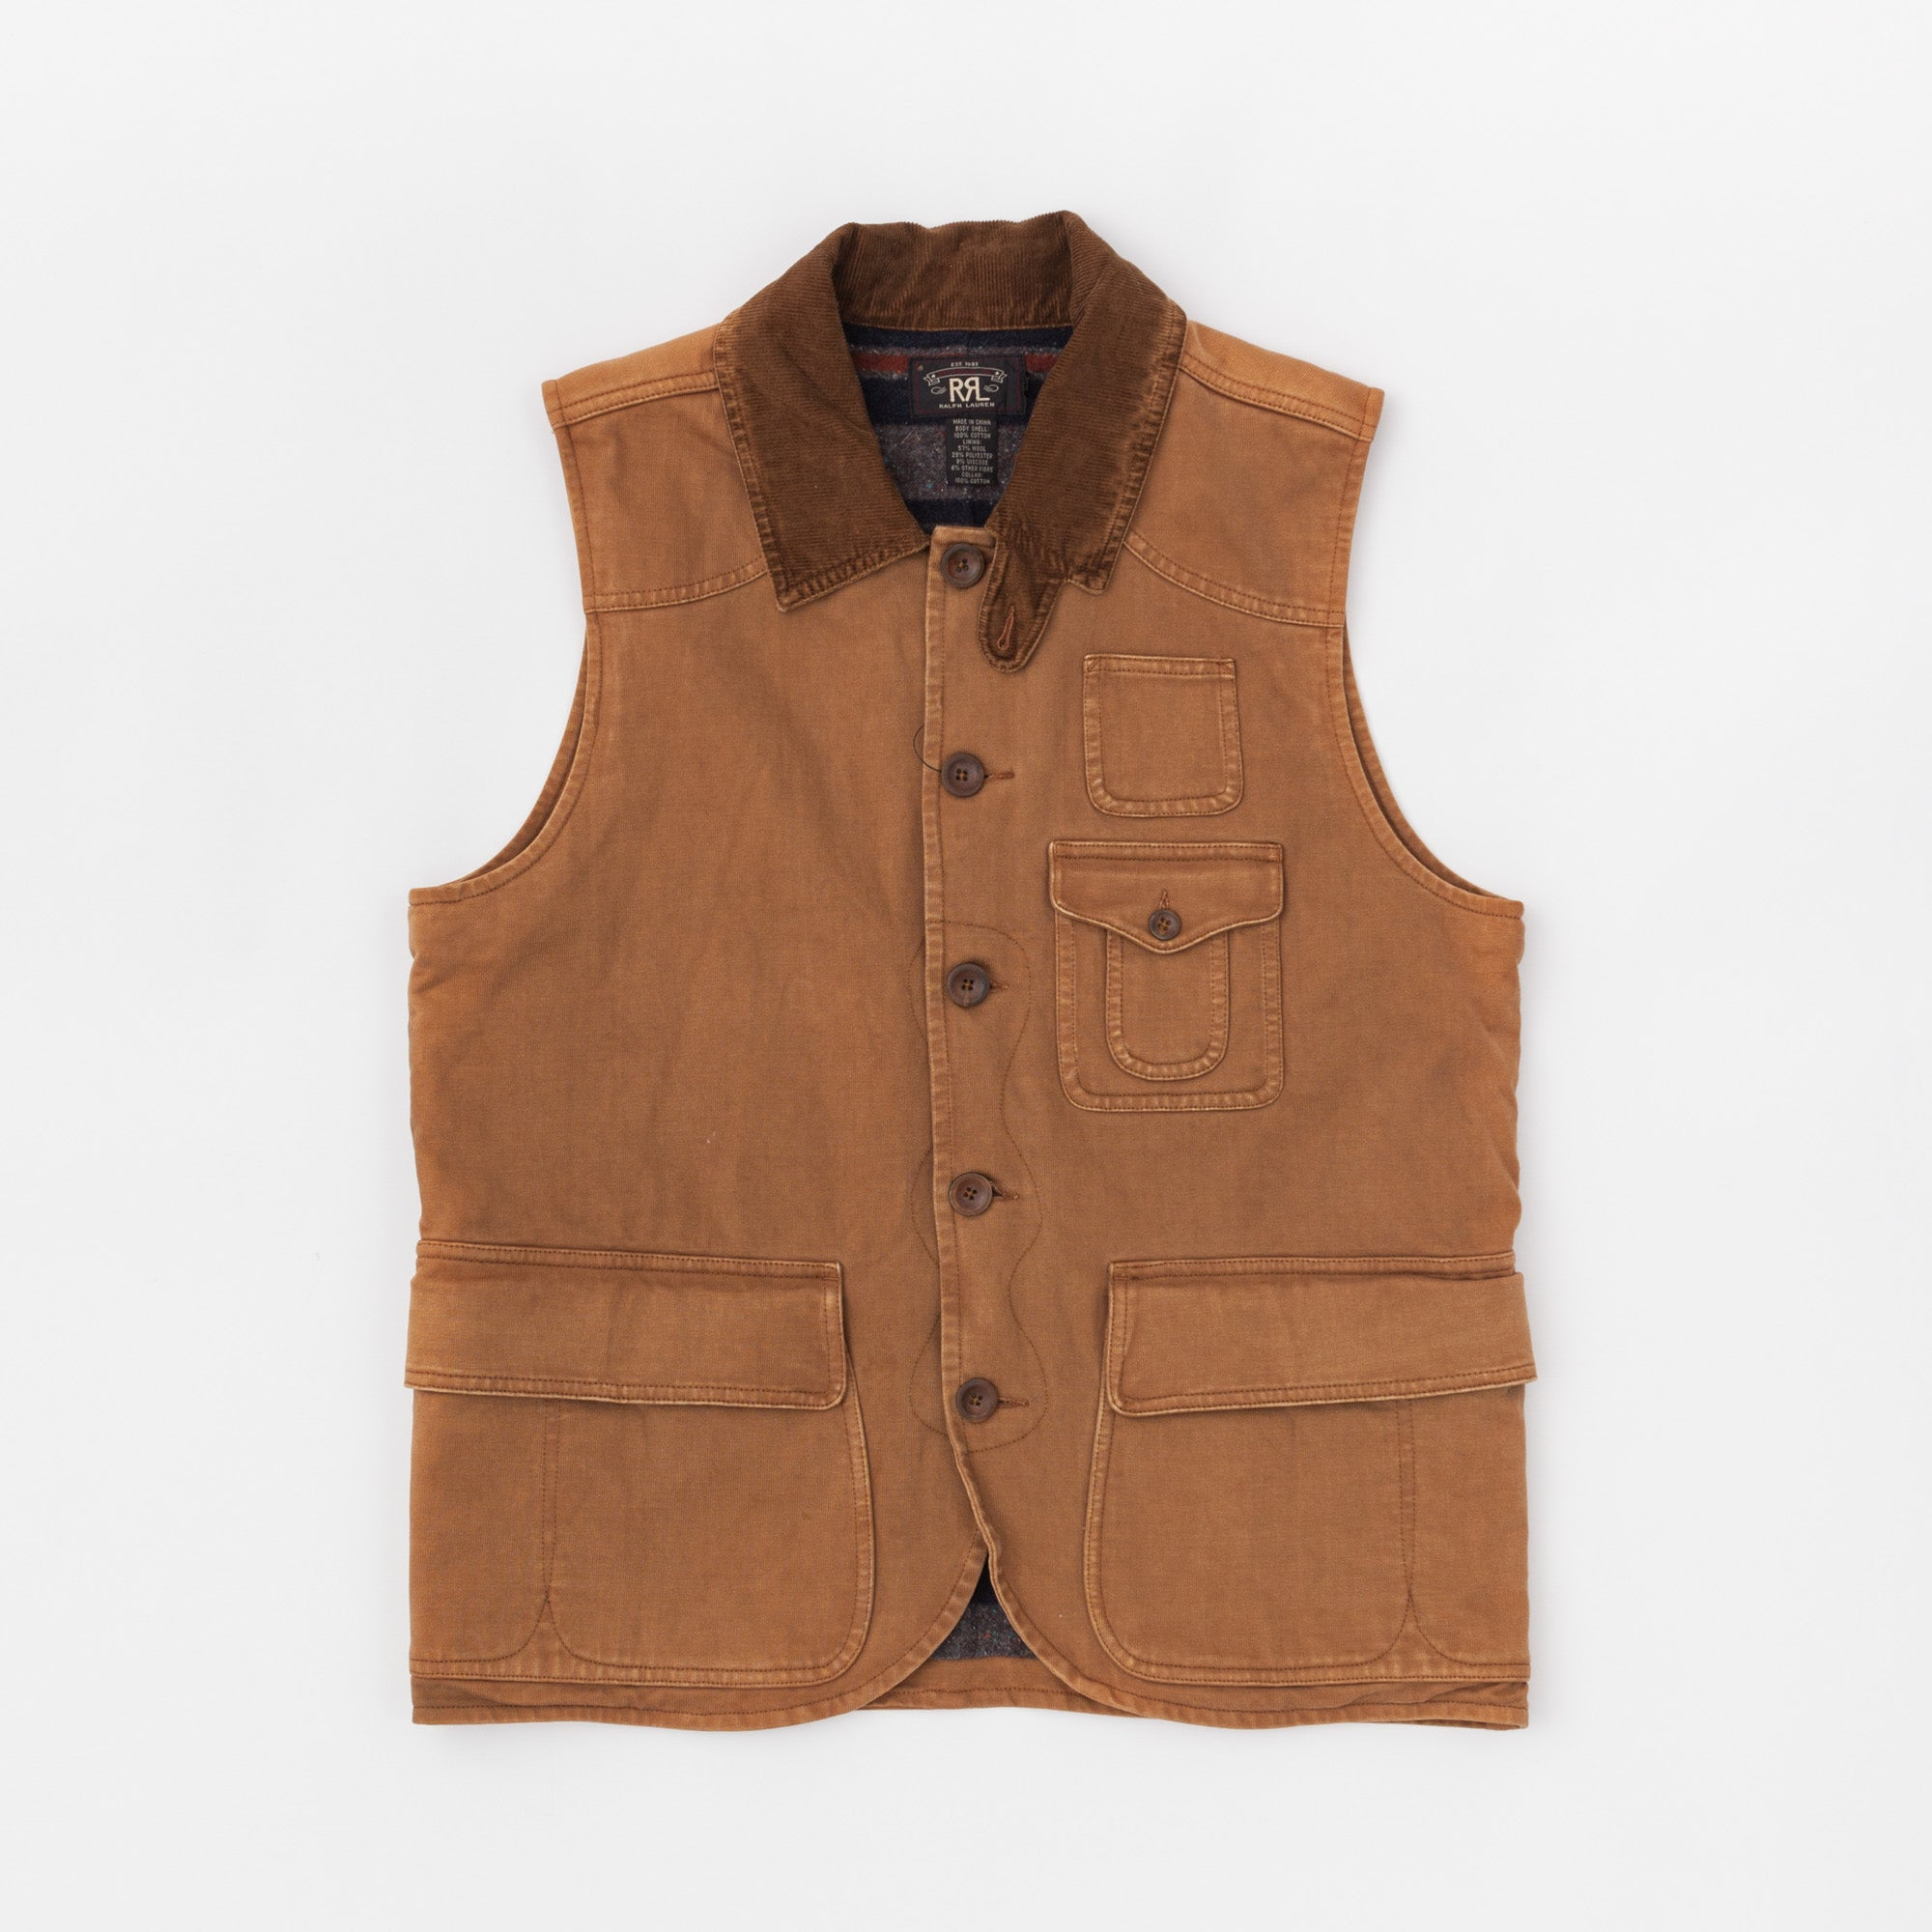 Blanket Lined Hunting Vest